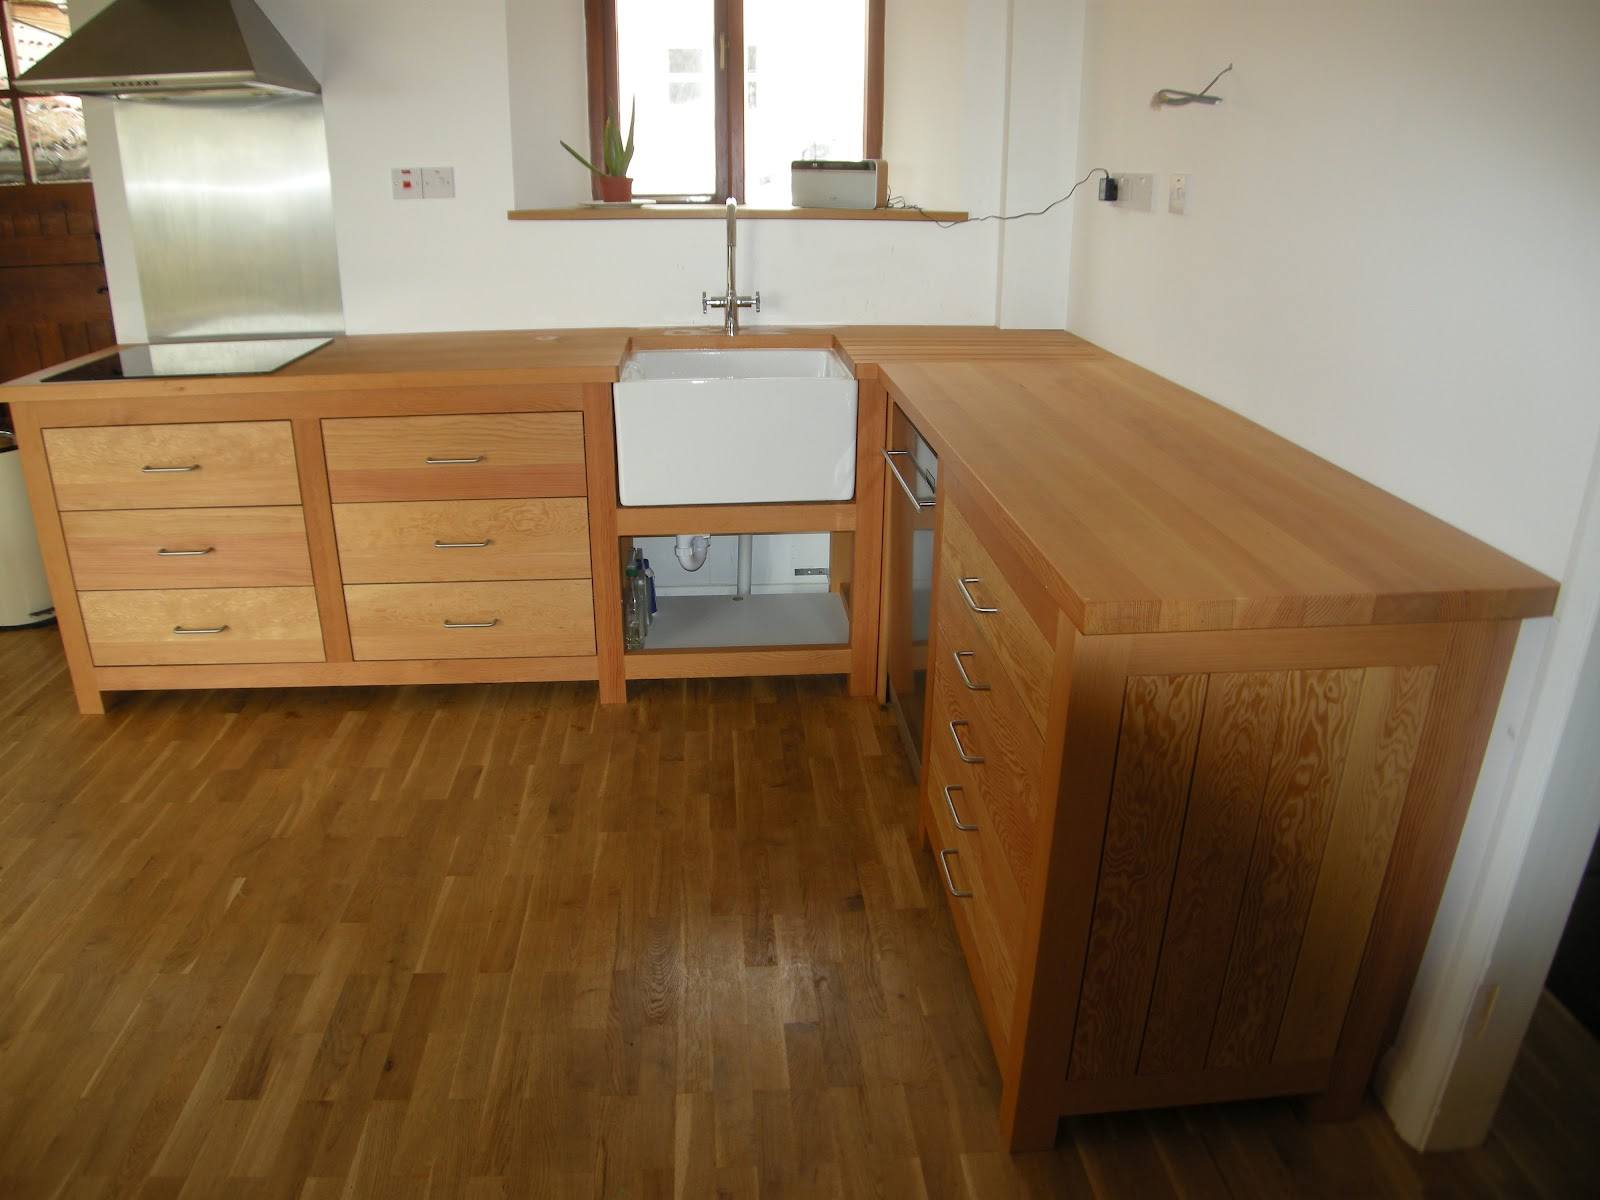 Squirrel Brand Joinery.: Free-standing Kitchen Units.